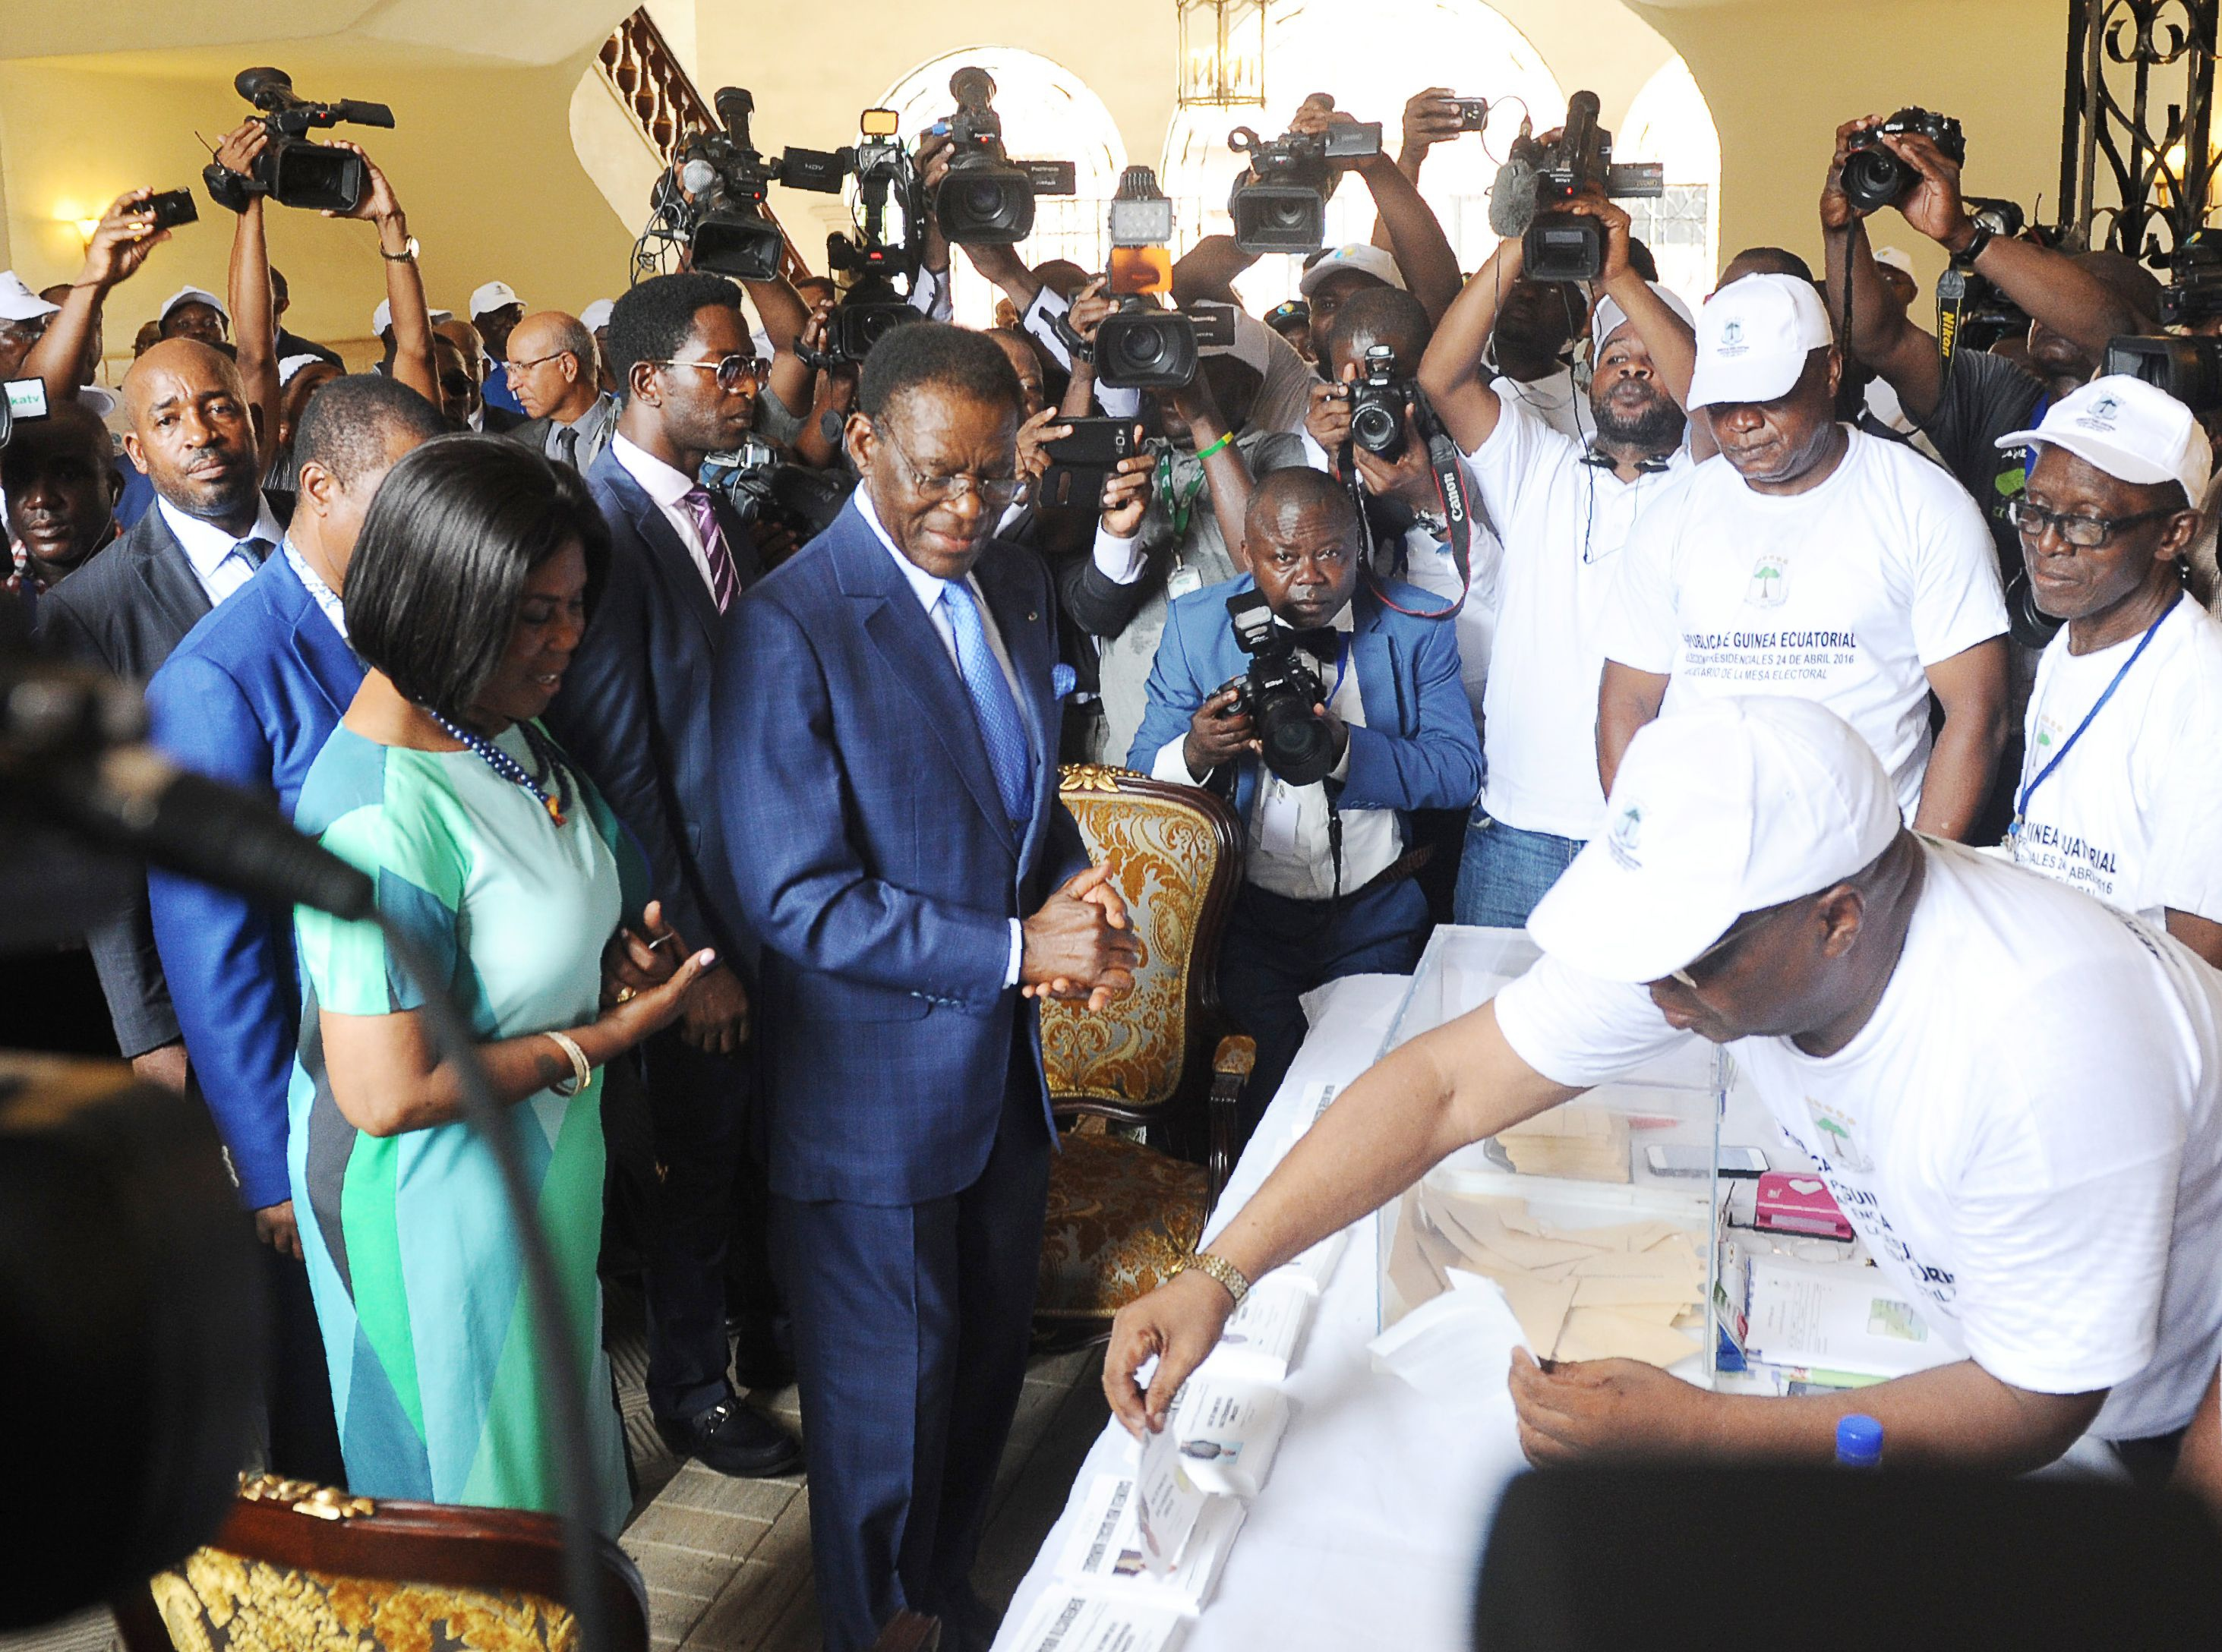 Equatorial Guinea President Teodoro Obiang Nguema (C) and his wife Constancia Mangue (L) arrive at the polling station on April 24, 2016 in Malabo during the presidential election vote